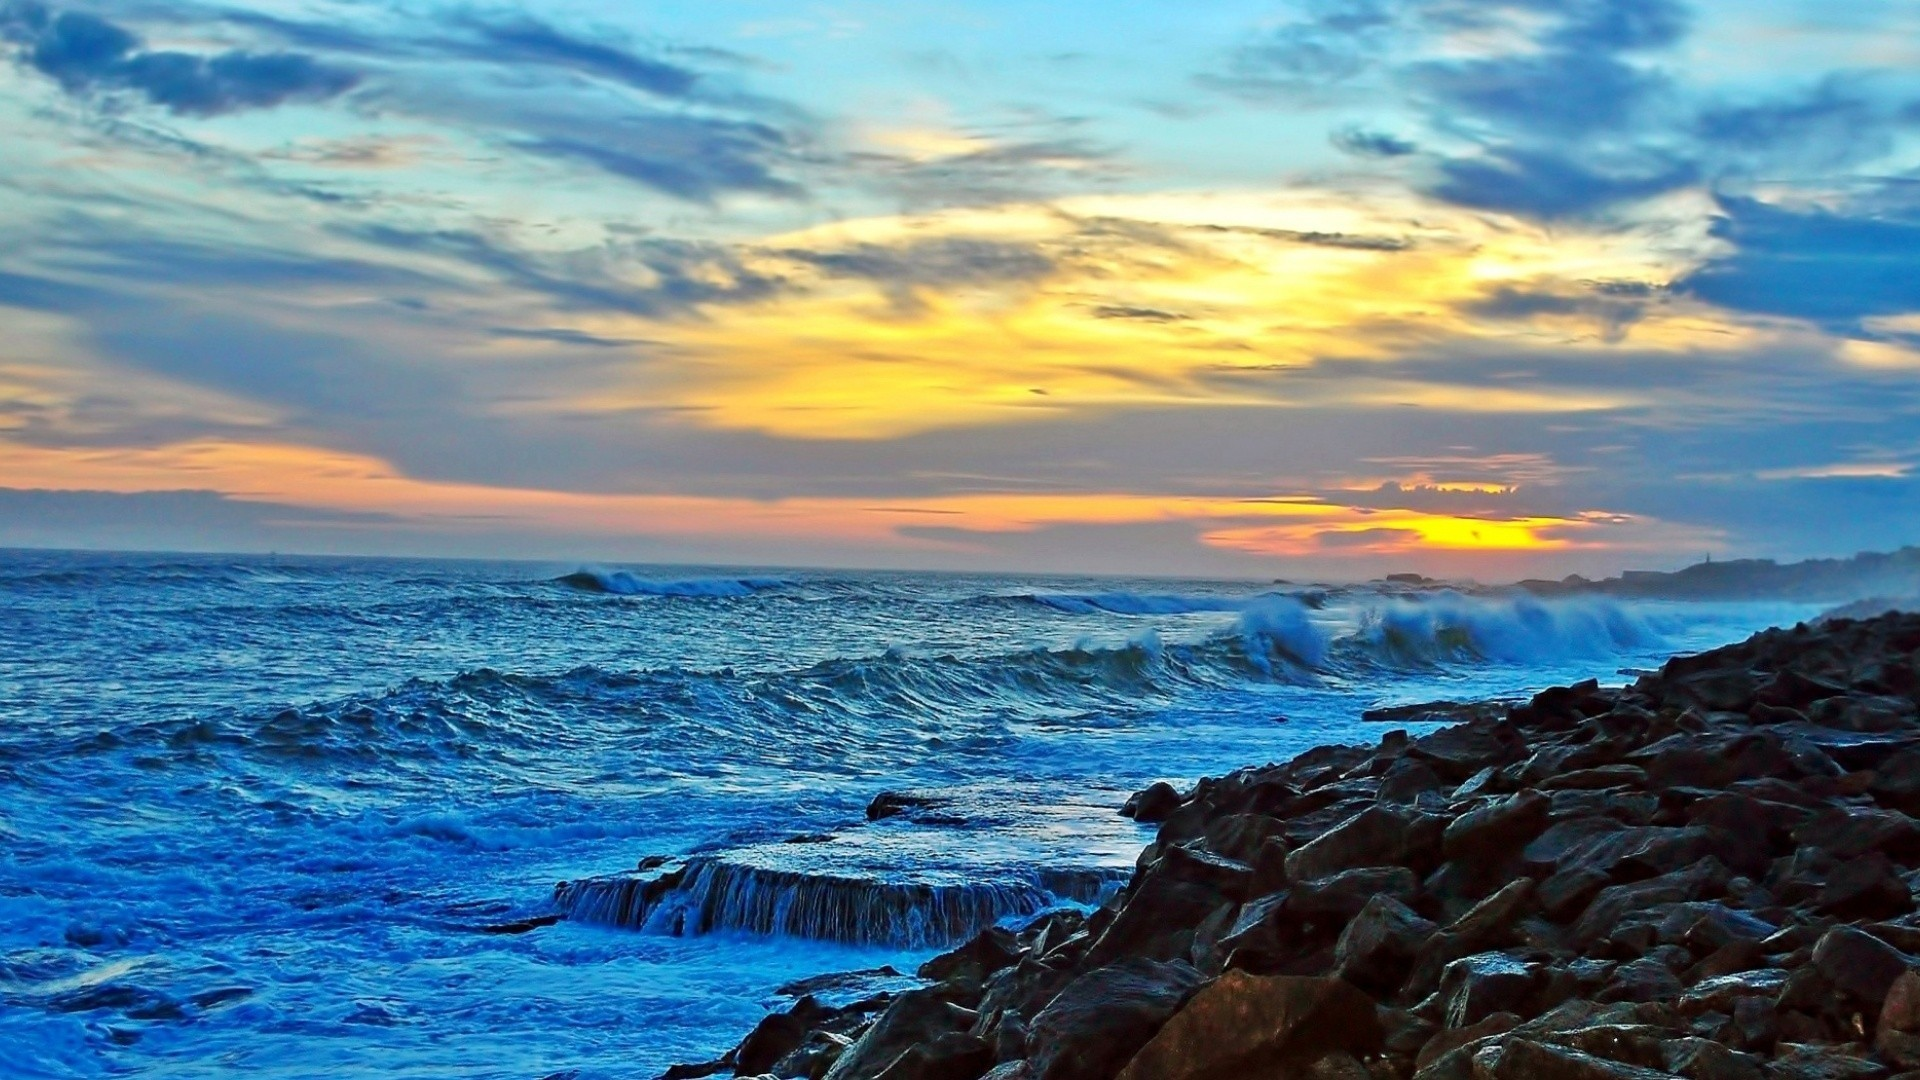 Angry Sea Rocky Coast Sunset Clouds Waves Surf Rocks Nature Paradise India Beach  Iphone 6 Wallpaper Tumblr Detail